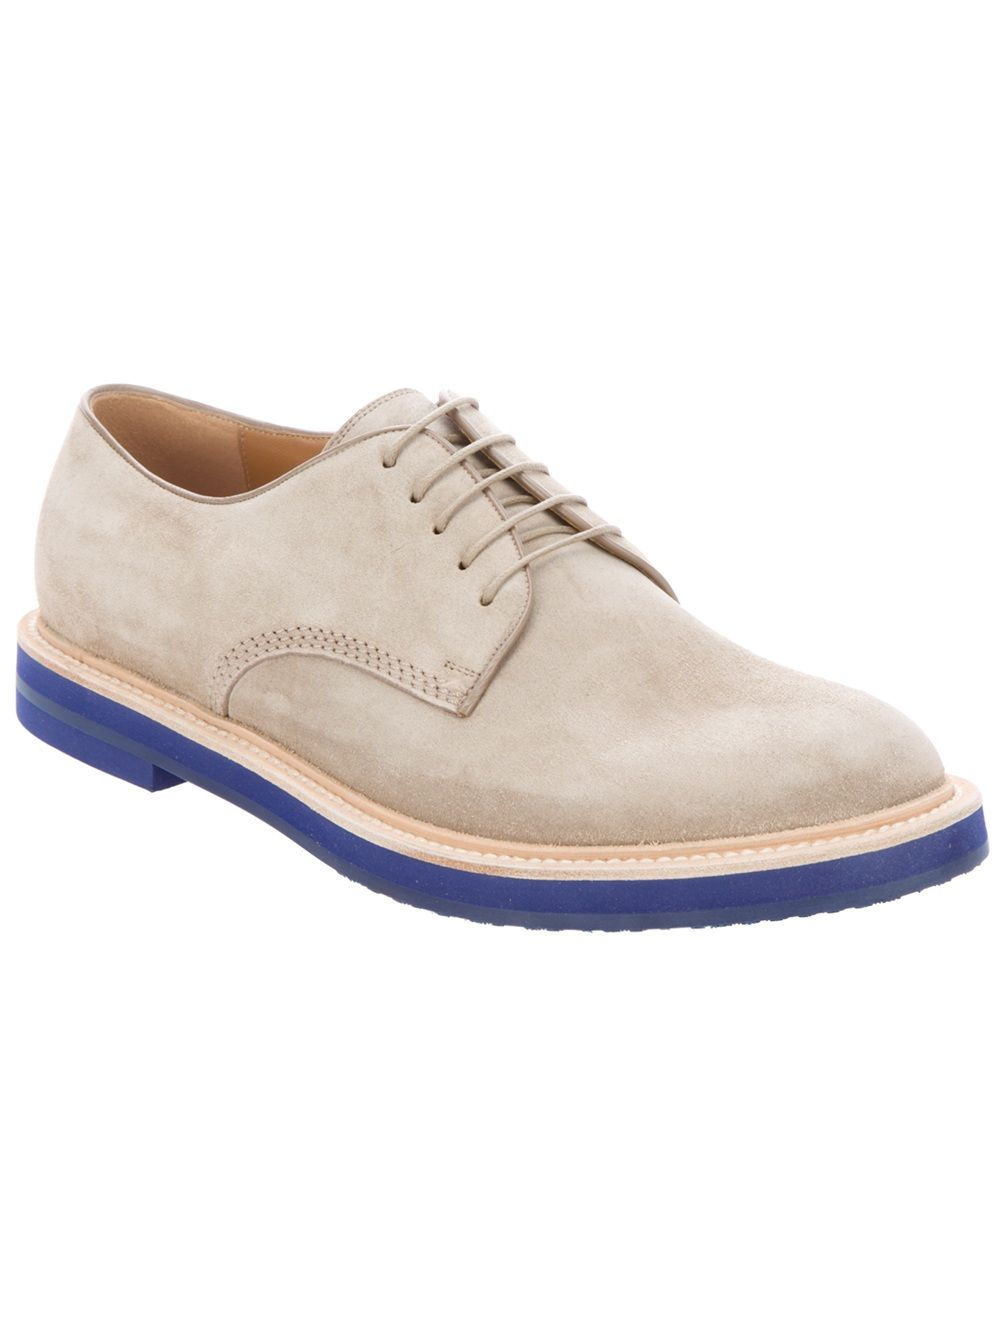 4561229d8ca9f GUCCI CLASSIC SUEDE SHOE available from farfetch.com •ƒƒ•